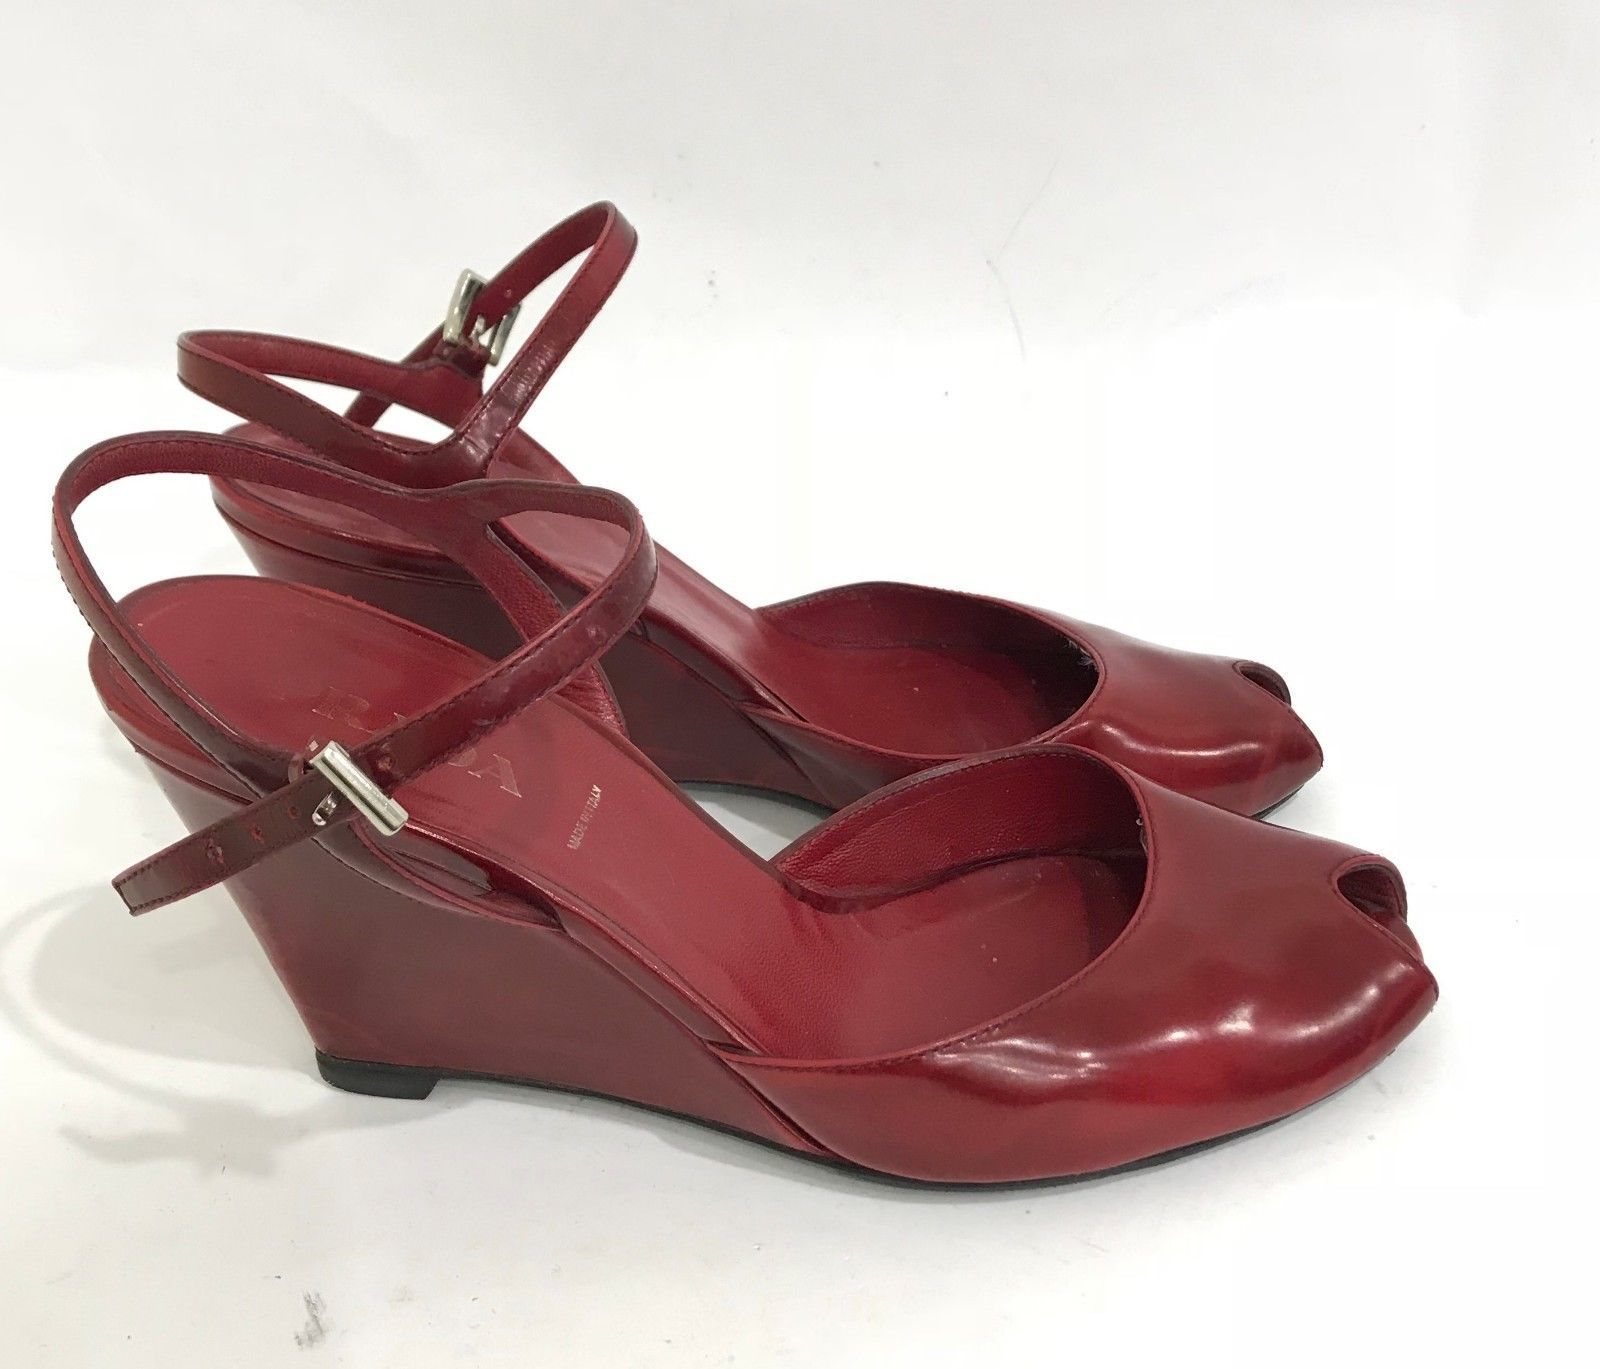 5b2479931 S l1600. S l1600. Previous. PRADA Red Leather High Wedge Heel Shoes Open  Toe Ankle Strap Sandals Size US 6.5